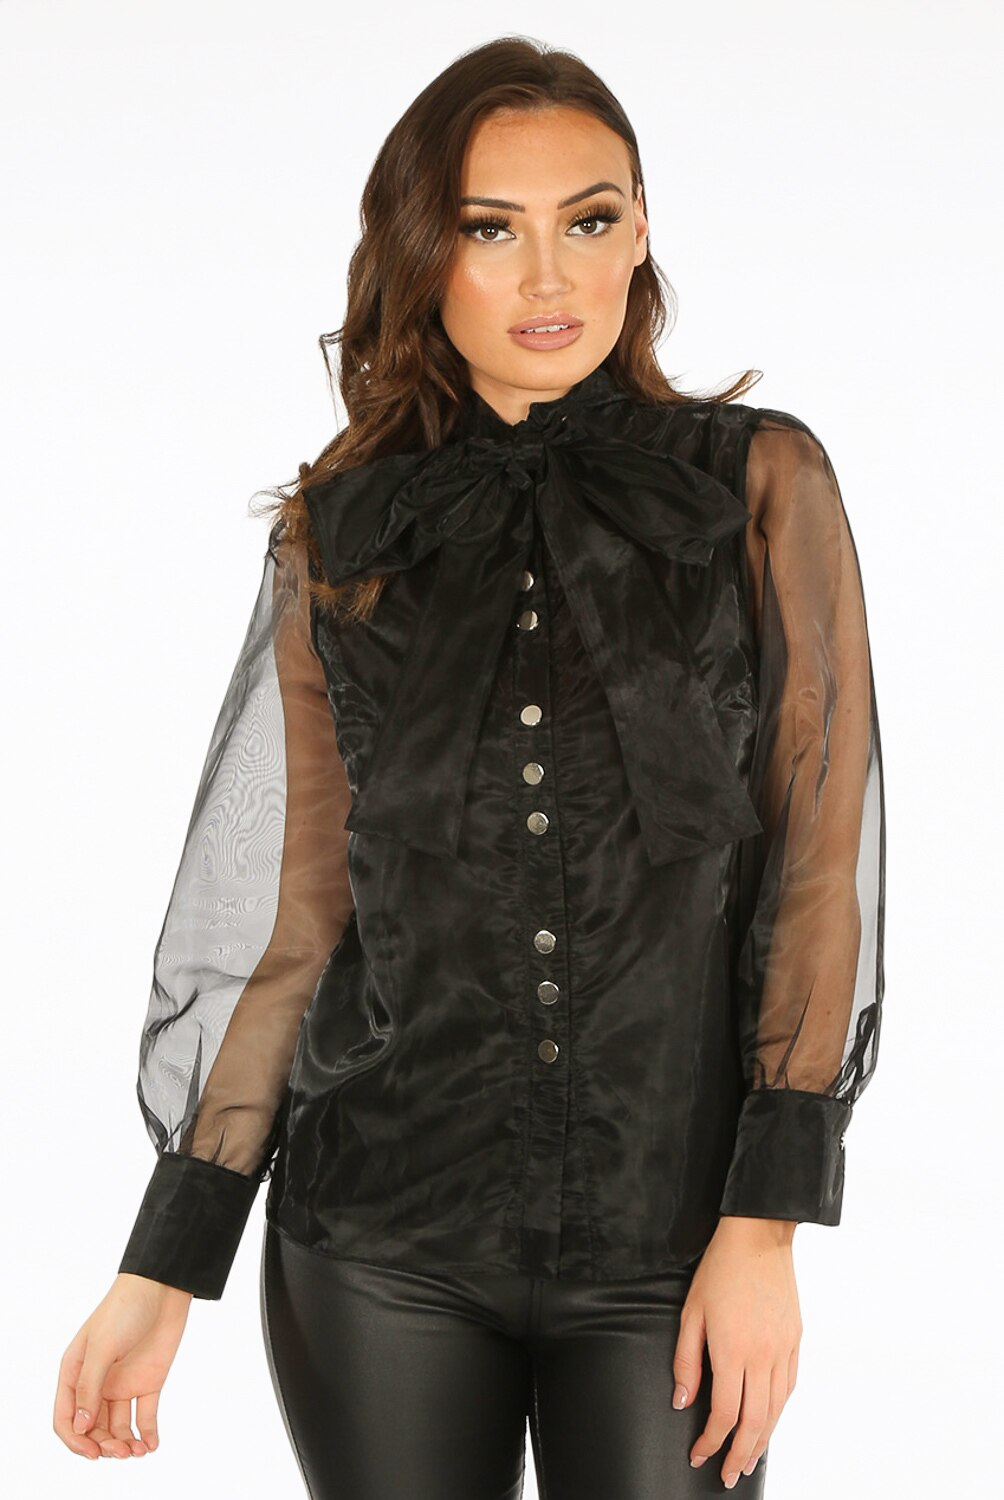 Black Sheer Blouse with Tie Bow Collar.